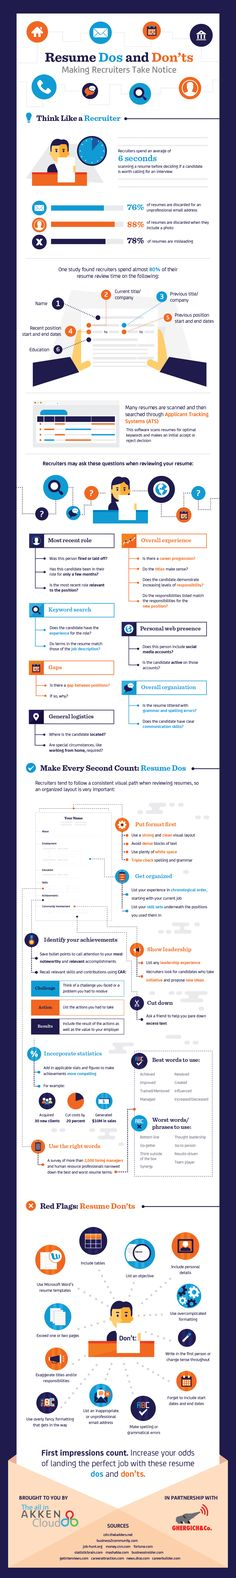 Resume Dos and Don'ts: Making Recruiters Take Notice #infographic